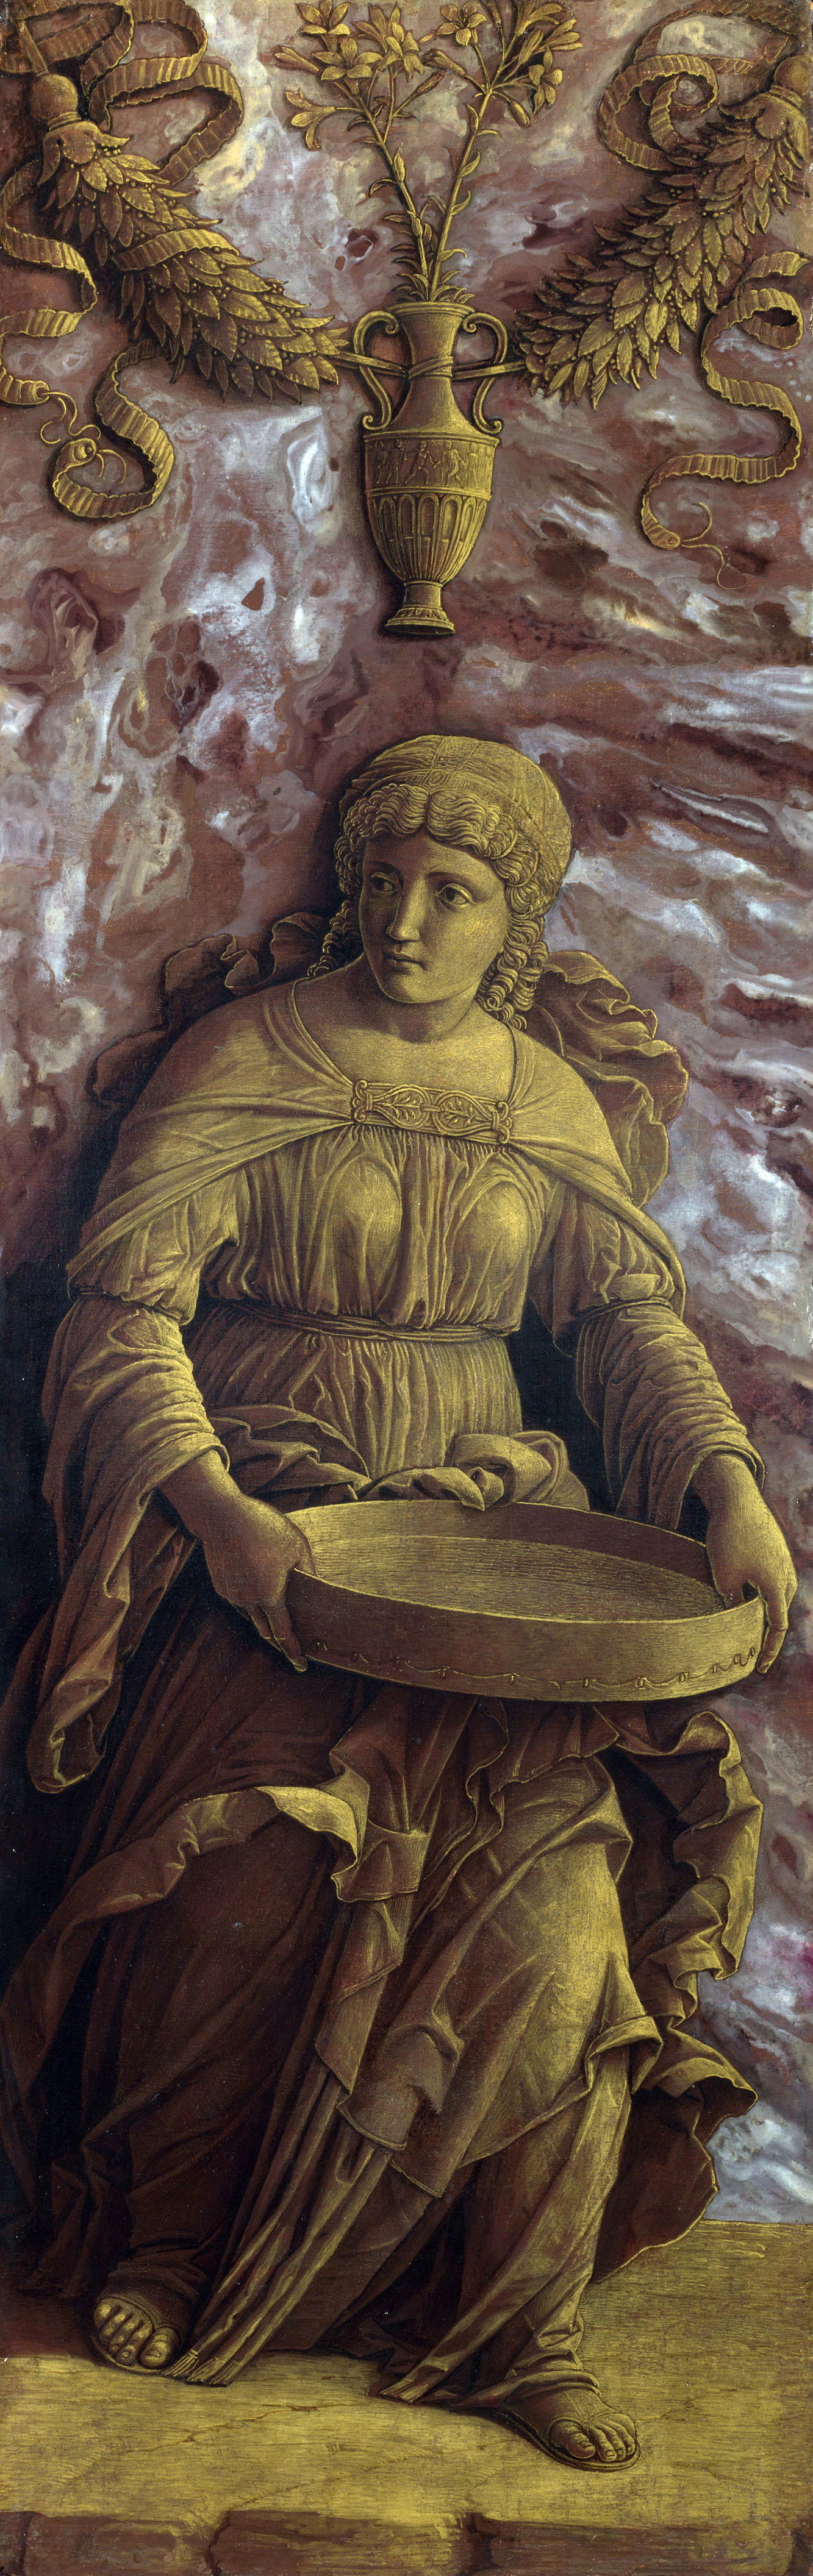 Mantegna-1490-The-Vestal-Virgin-Tuccia-with-a-sieve-National-Gallery